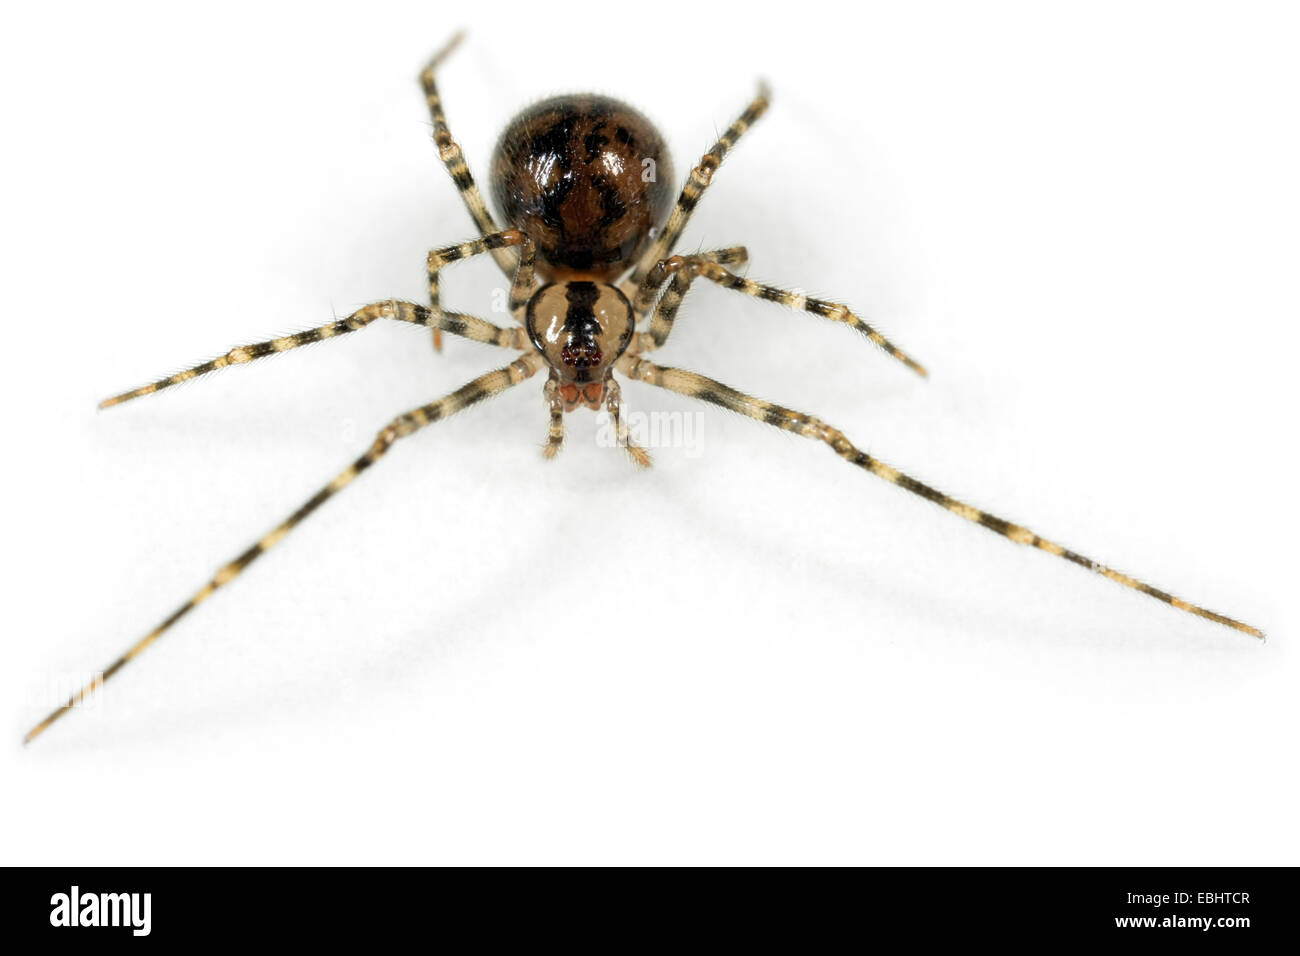 A female Cave Cobweb spider (Nesticus cellulanus) on white background. Family Nesticidae, Cave Cobweb spiders. - Stock Image